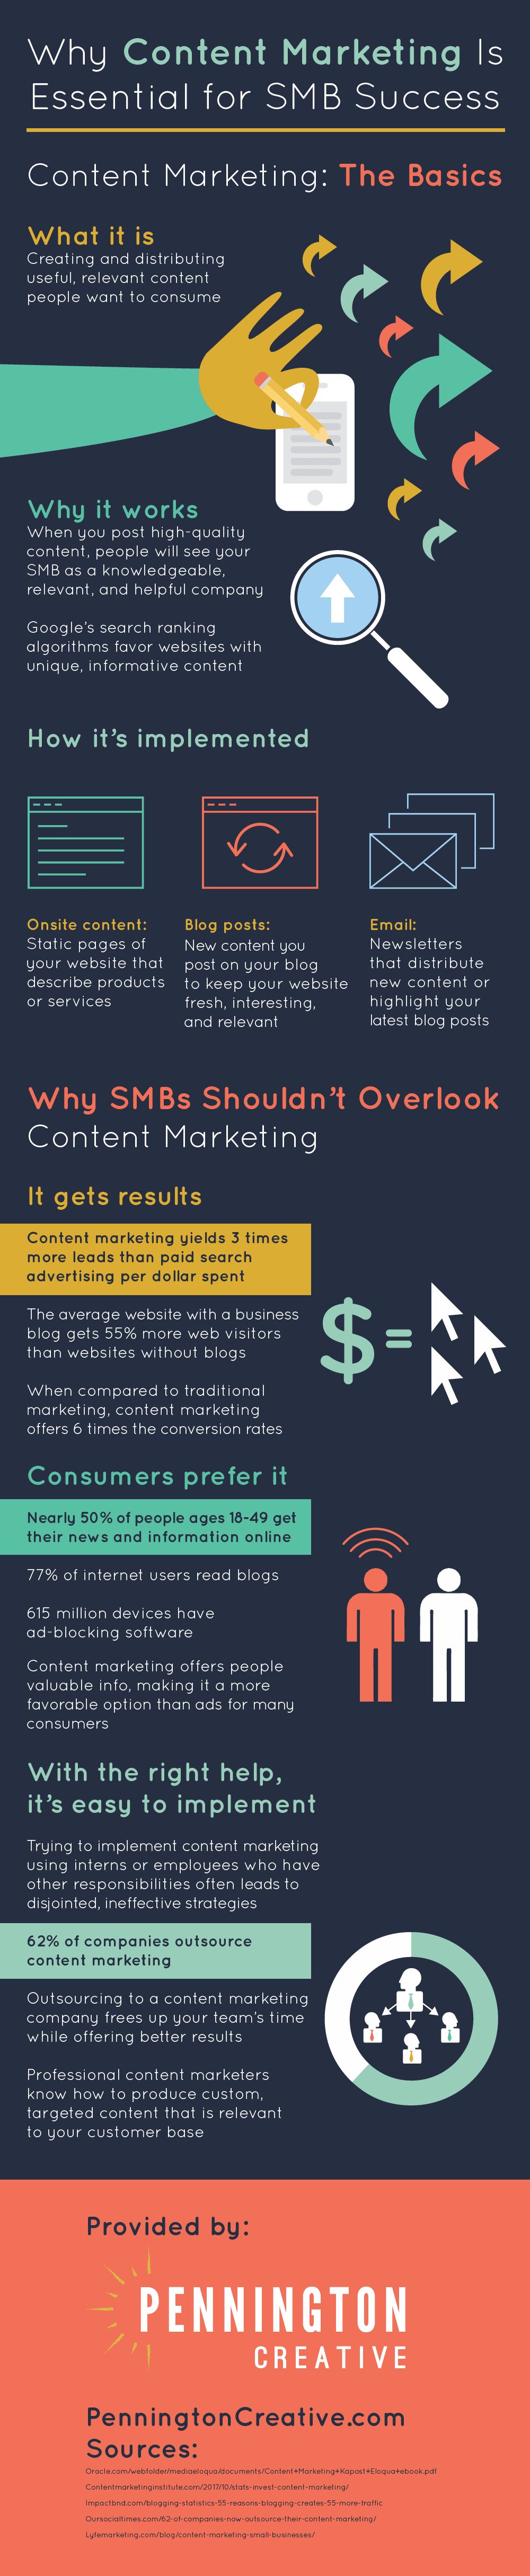 Infographic about the importance of content marketing for SMBs.